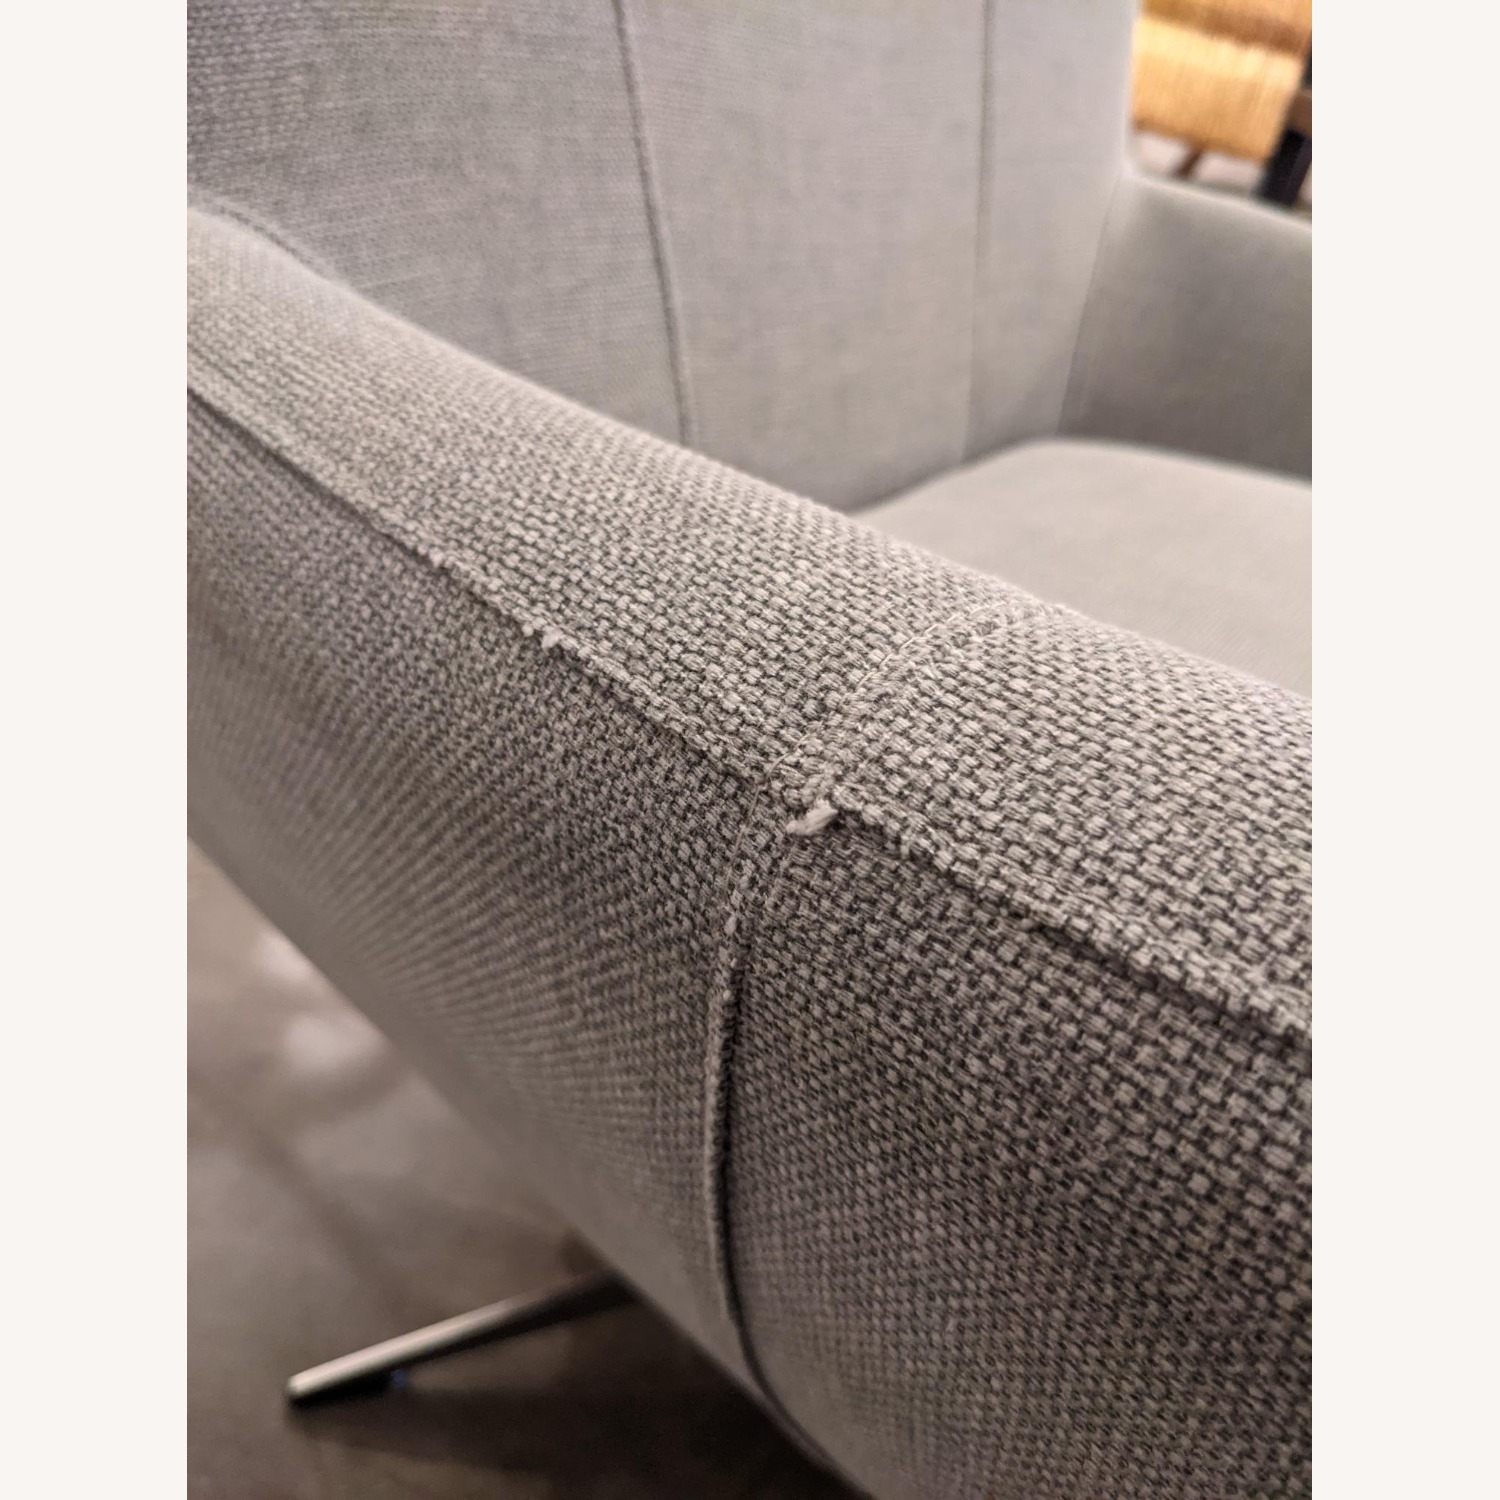 Pottery Barn Wells Tight Back Petite Armchair - image-6